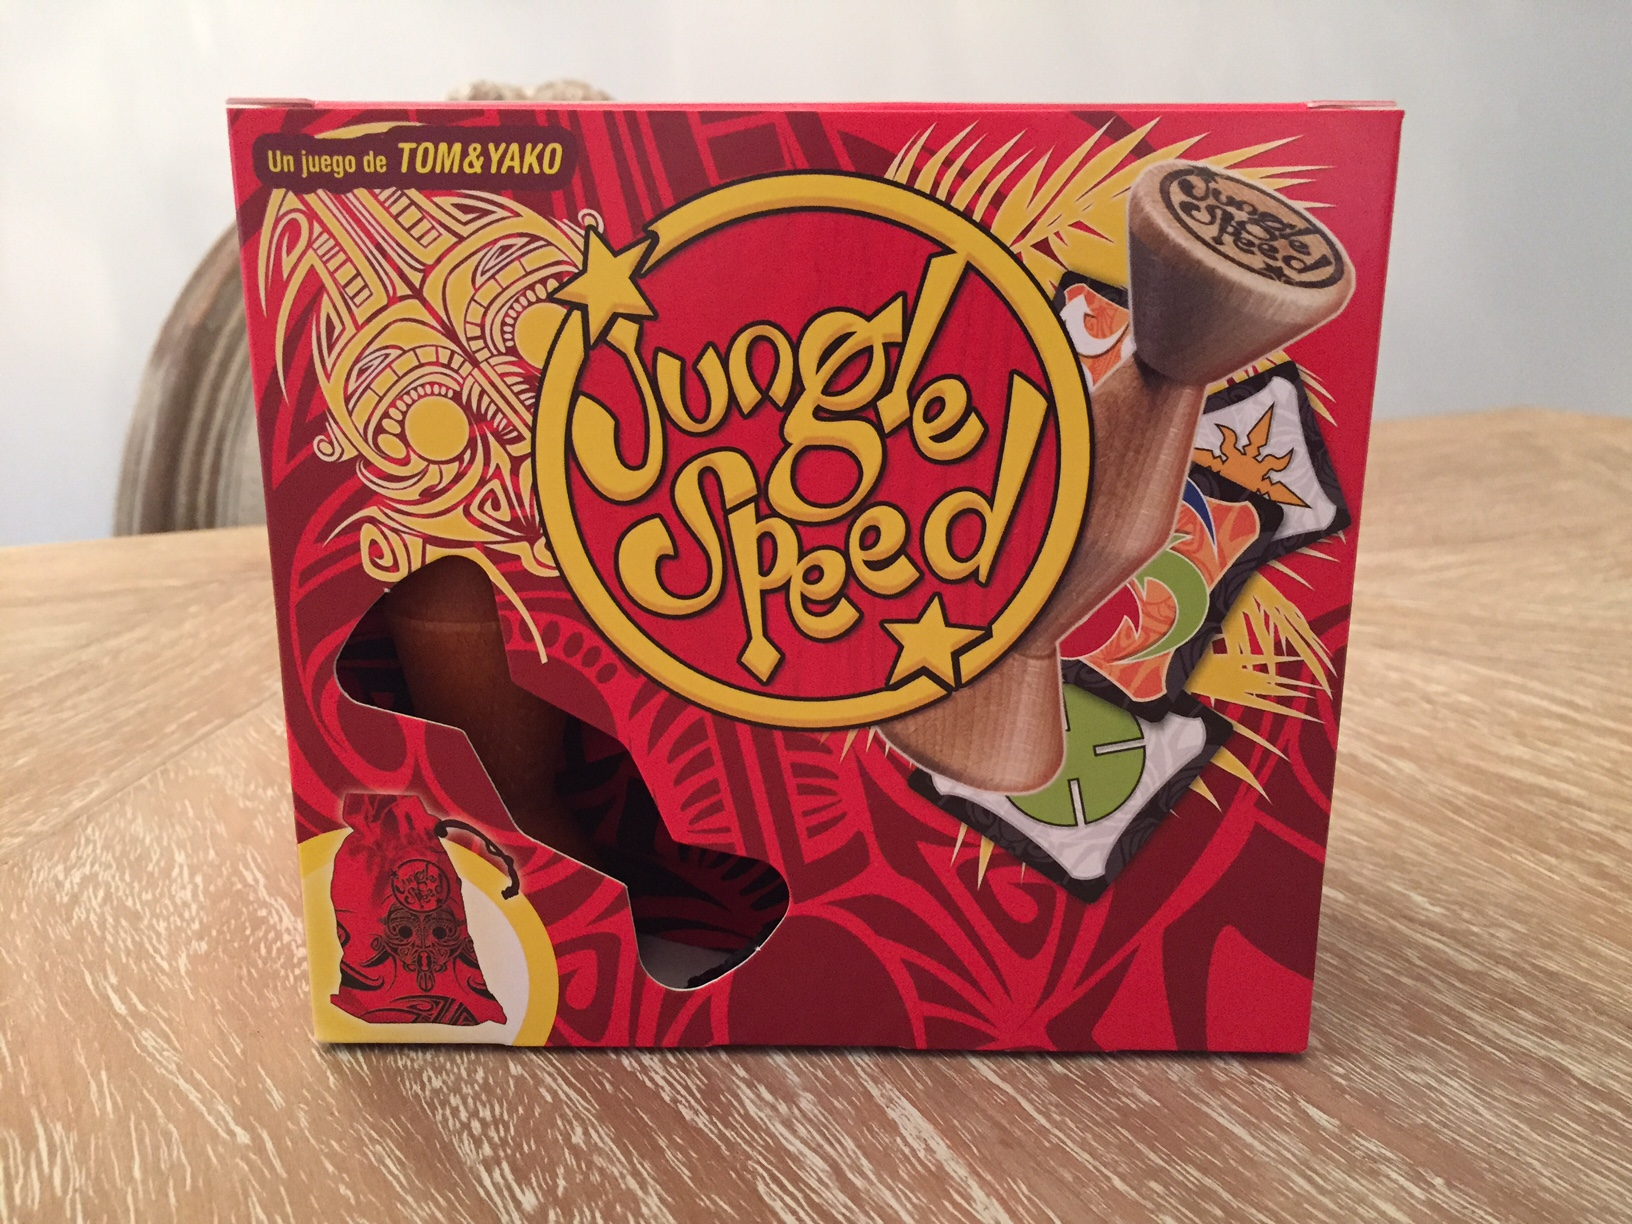 Hoy descubrimos… Jungle Speed